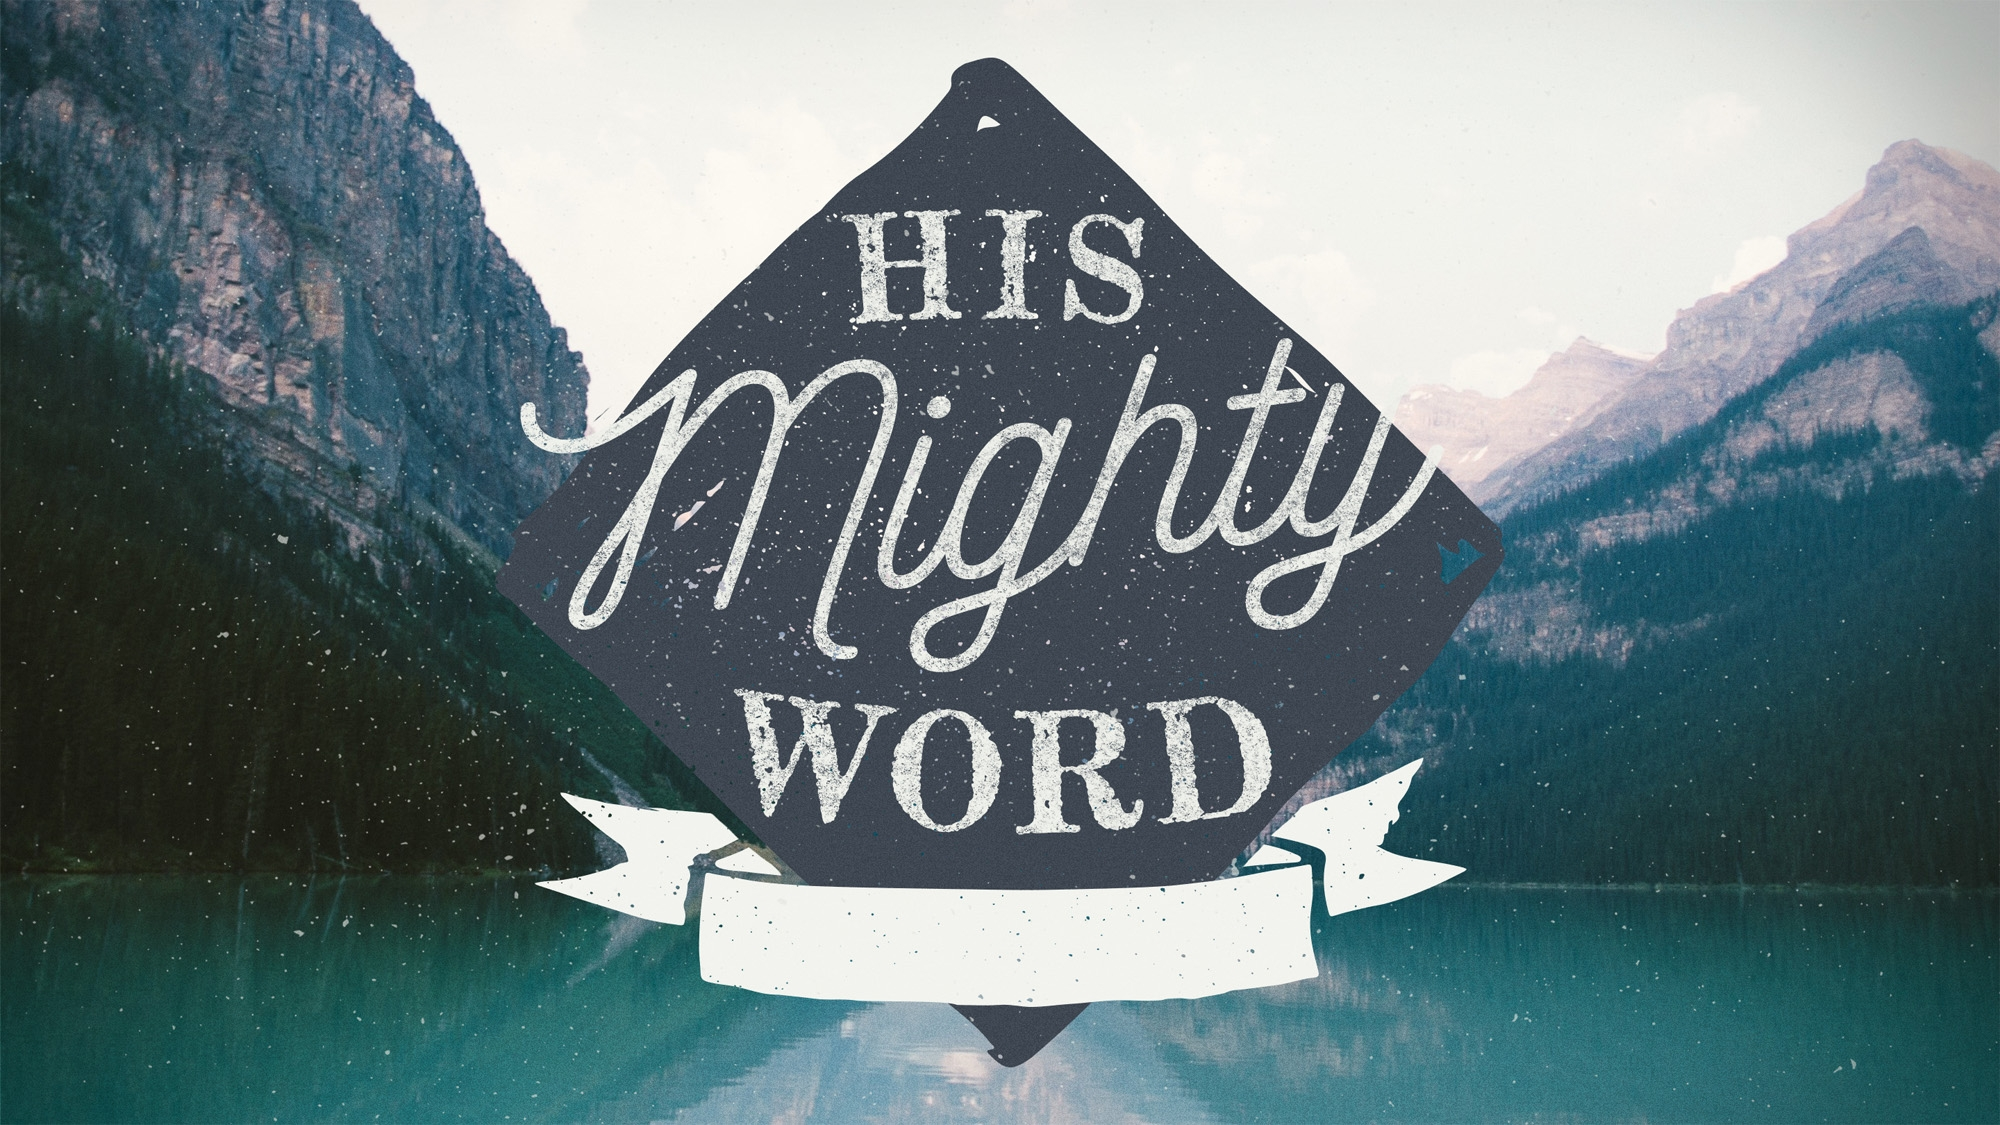 Sunday February 17, 2019 His Mighty Word - Pastor Anthony Cox